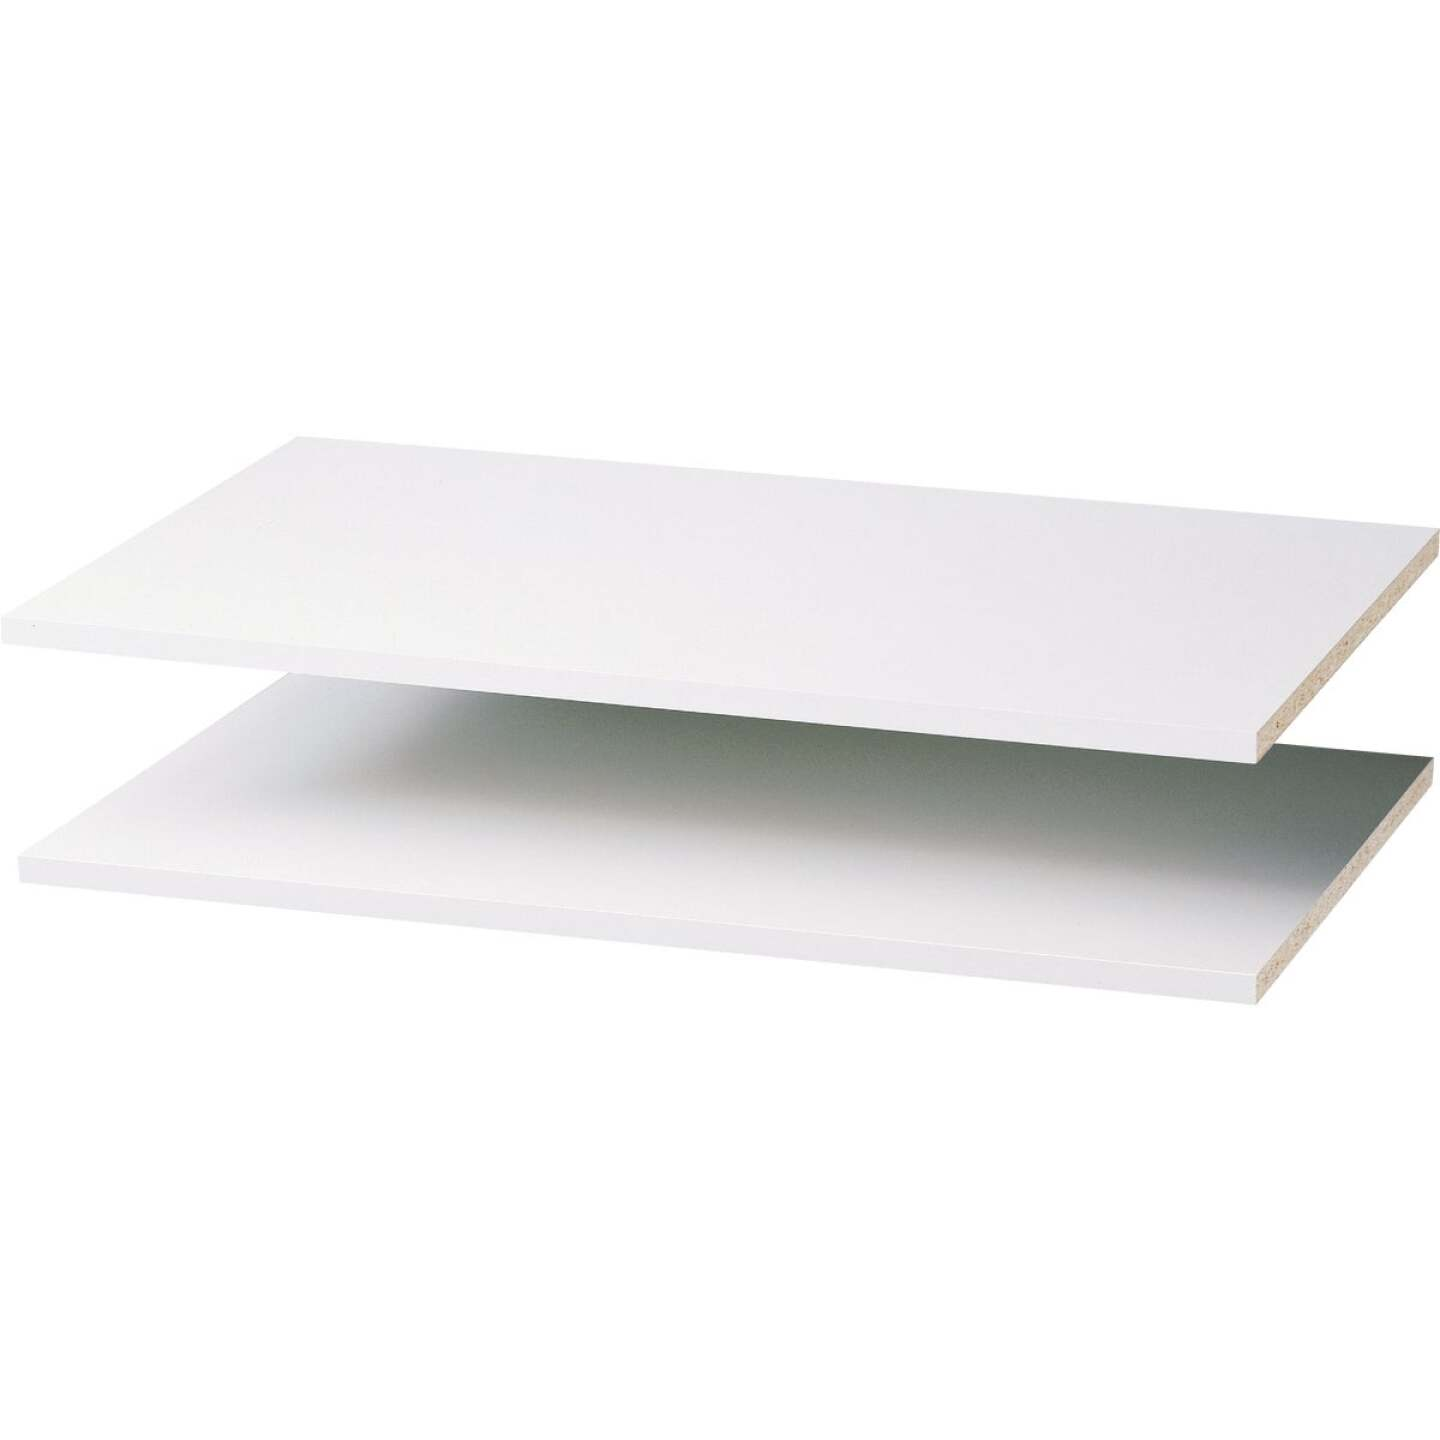 Easy Track 3 Ft. W. x 14 In. D. Laminated Closet Shelf, White (2-Pack) Image 1